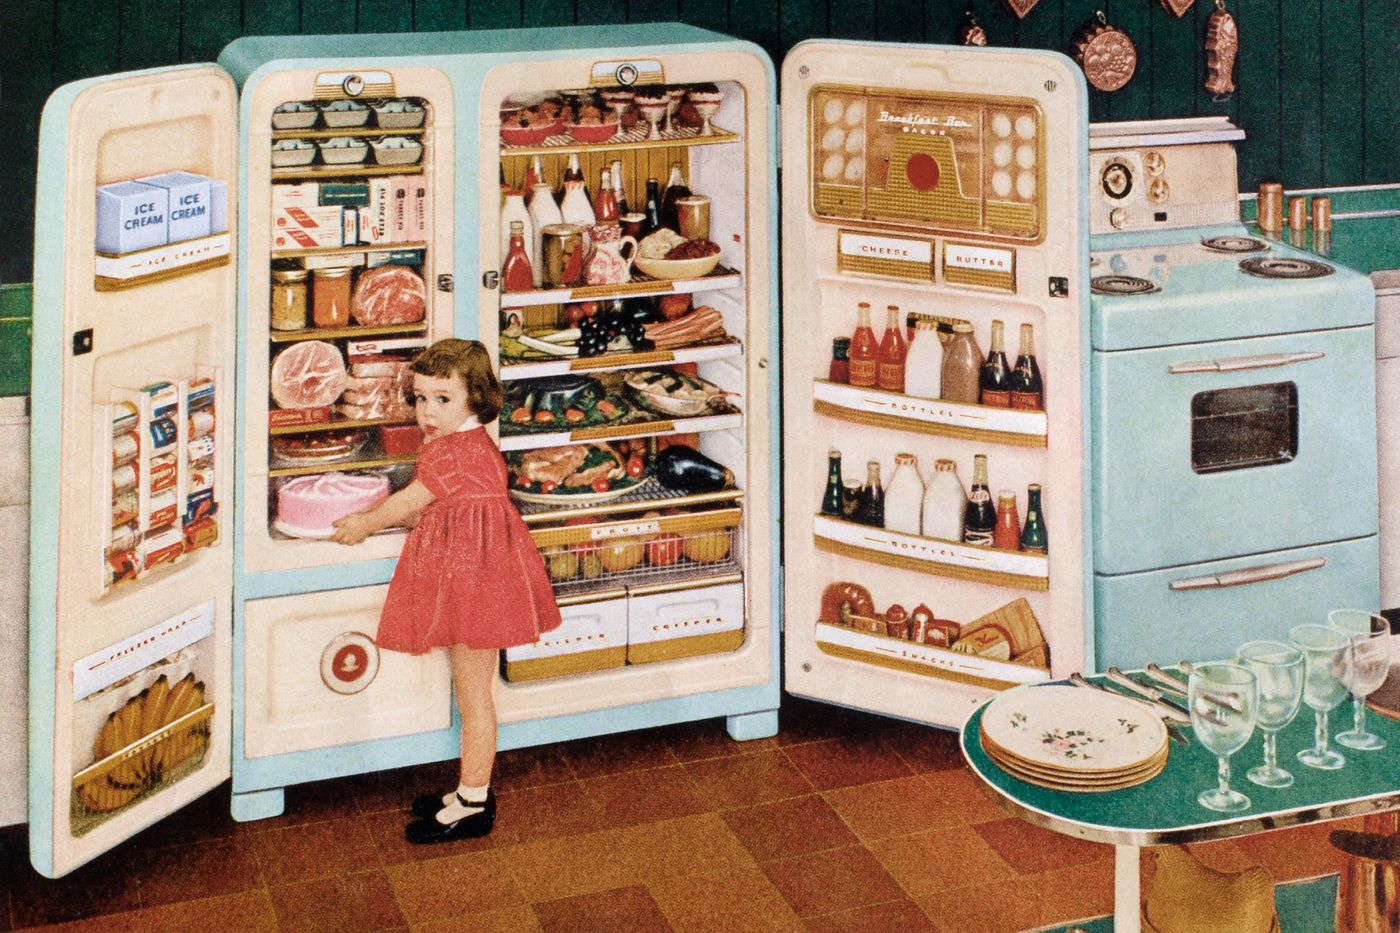 Illustration featuring a small girl in front of a full fridge.